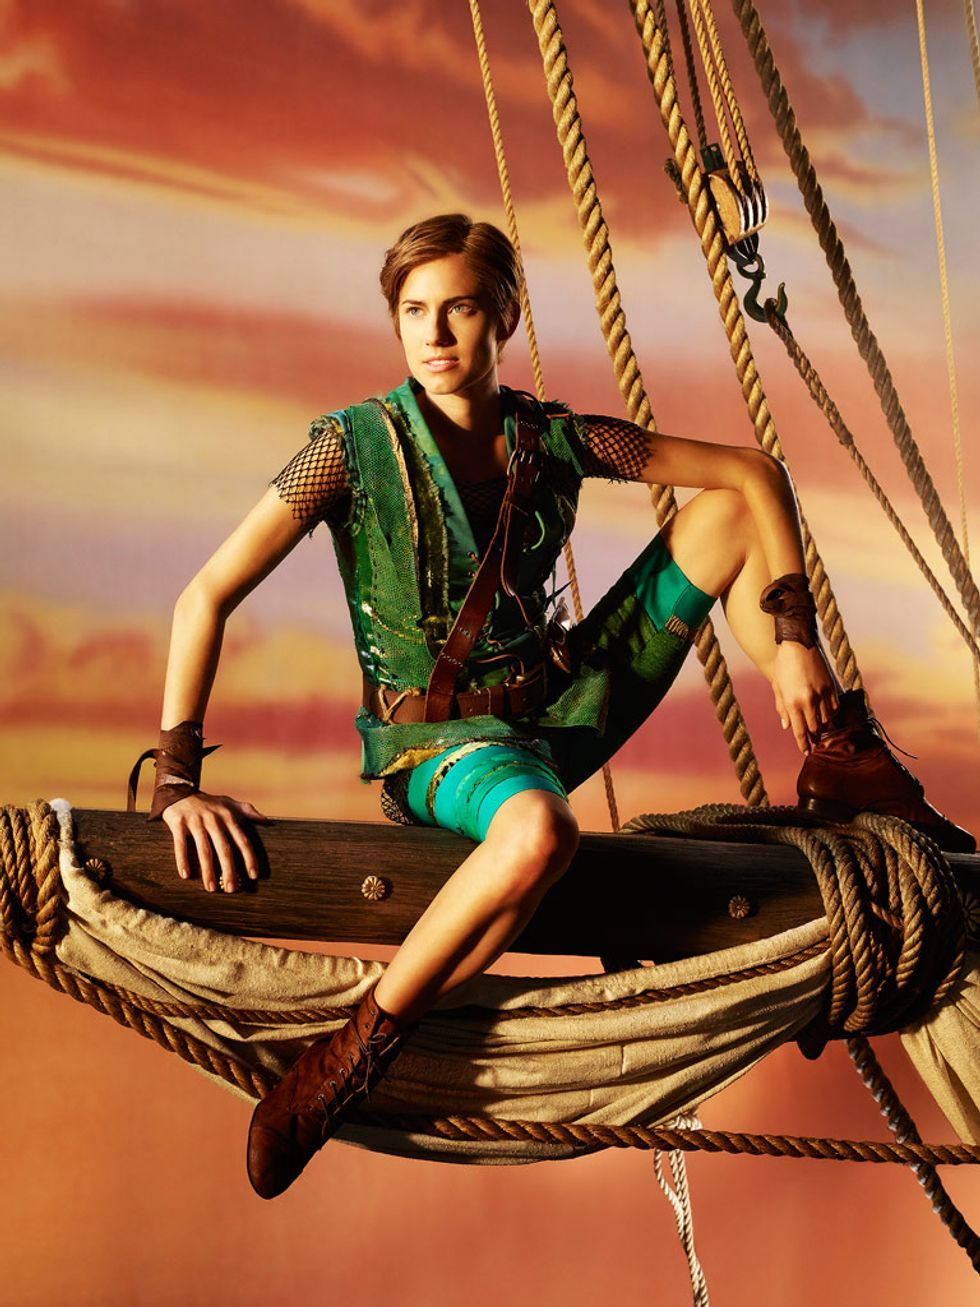 Some Observations on Allison Williams' New Peter Pan Photo